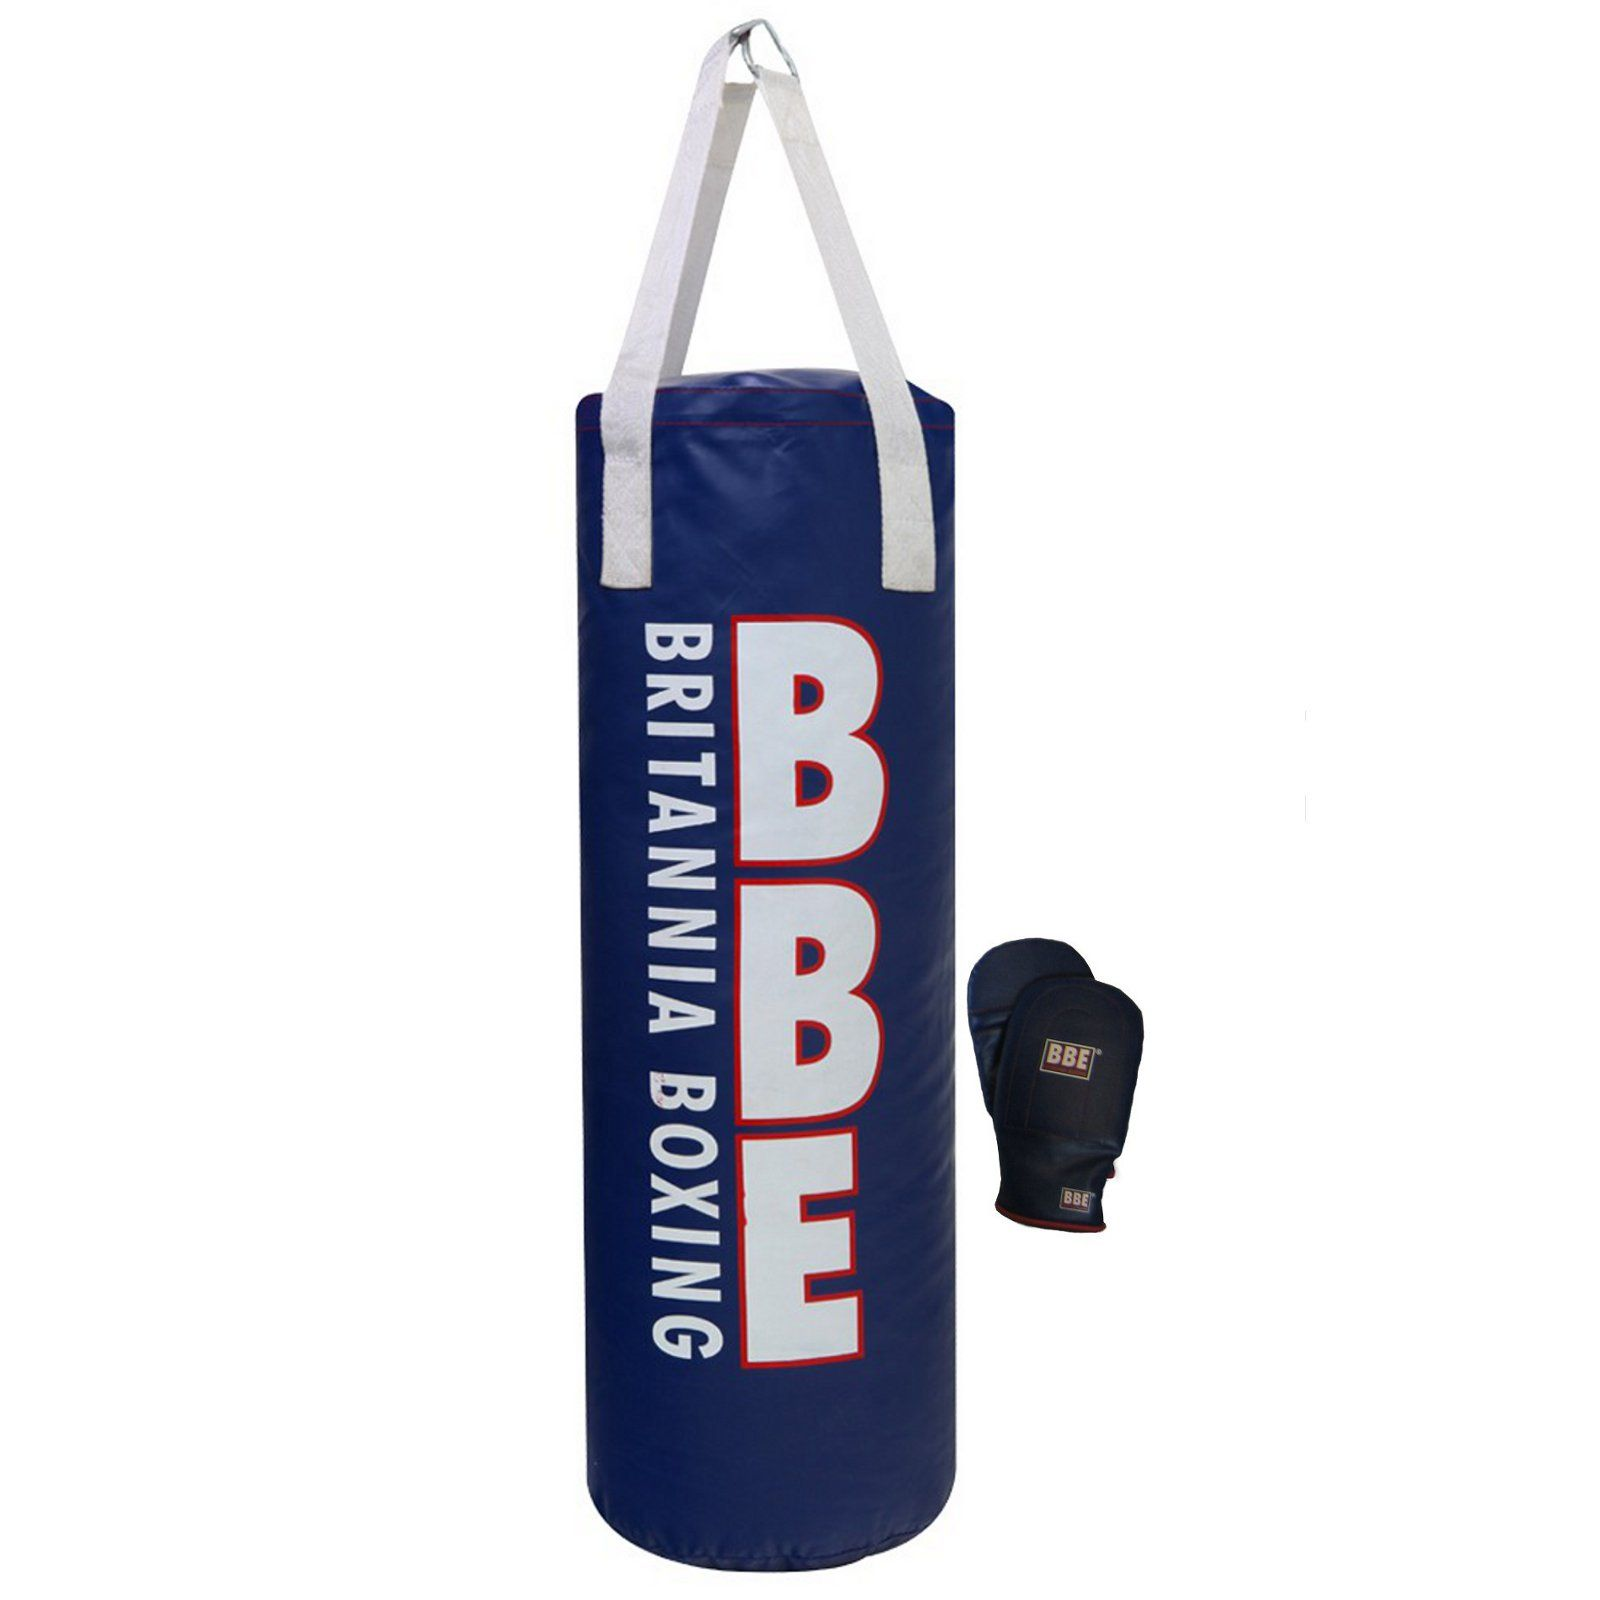 bbe 3ft punch bag with mitts sweatband